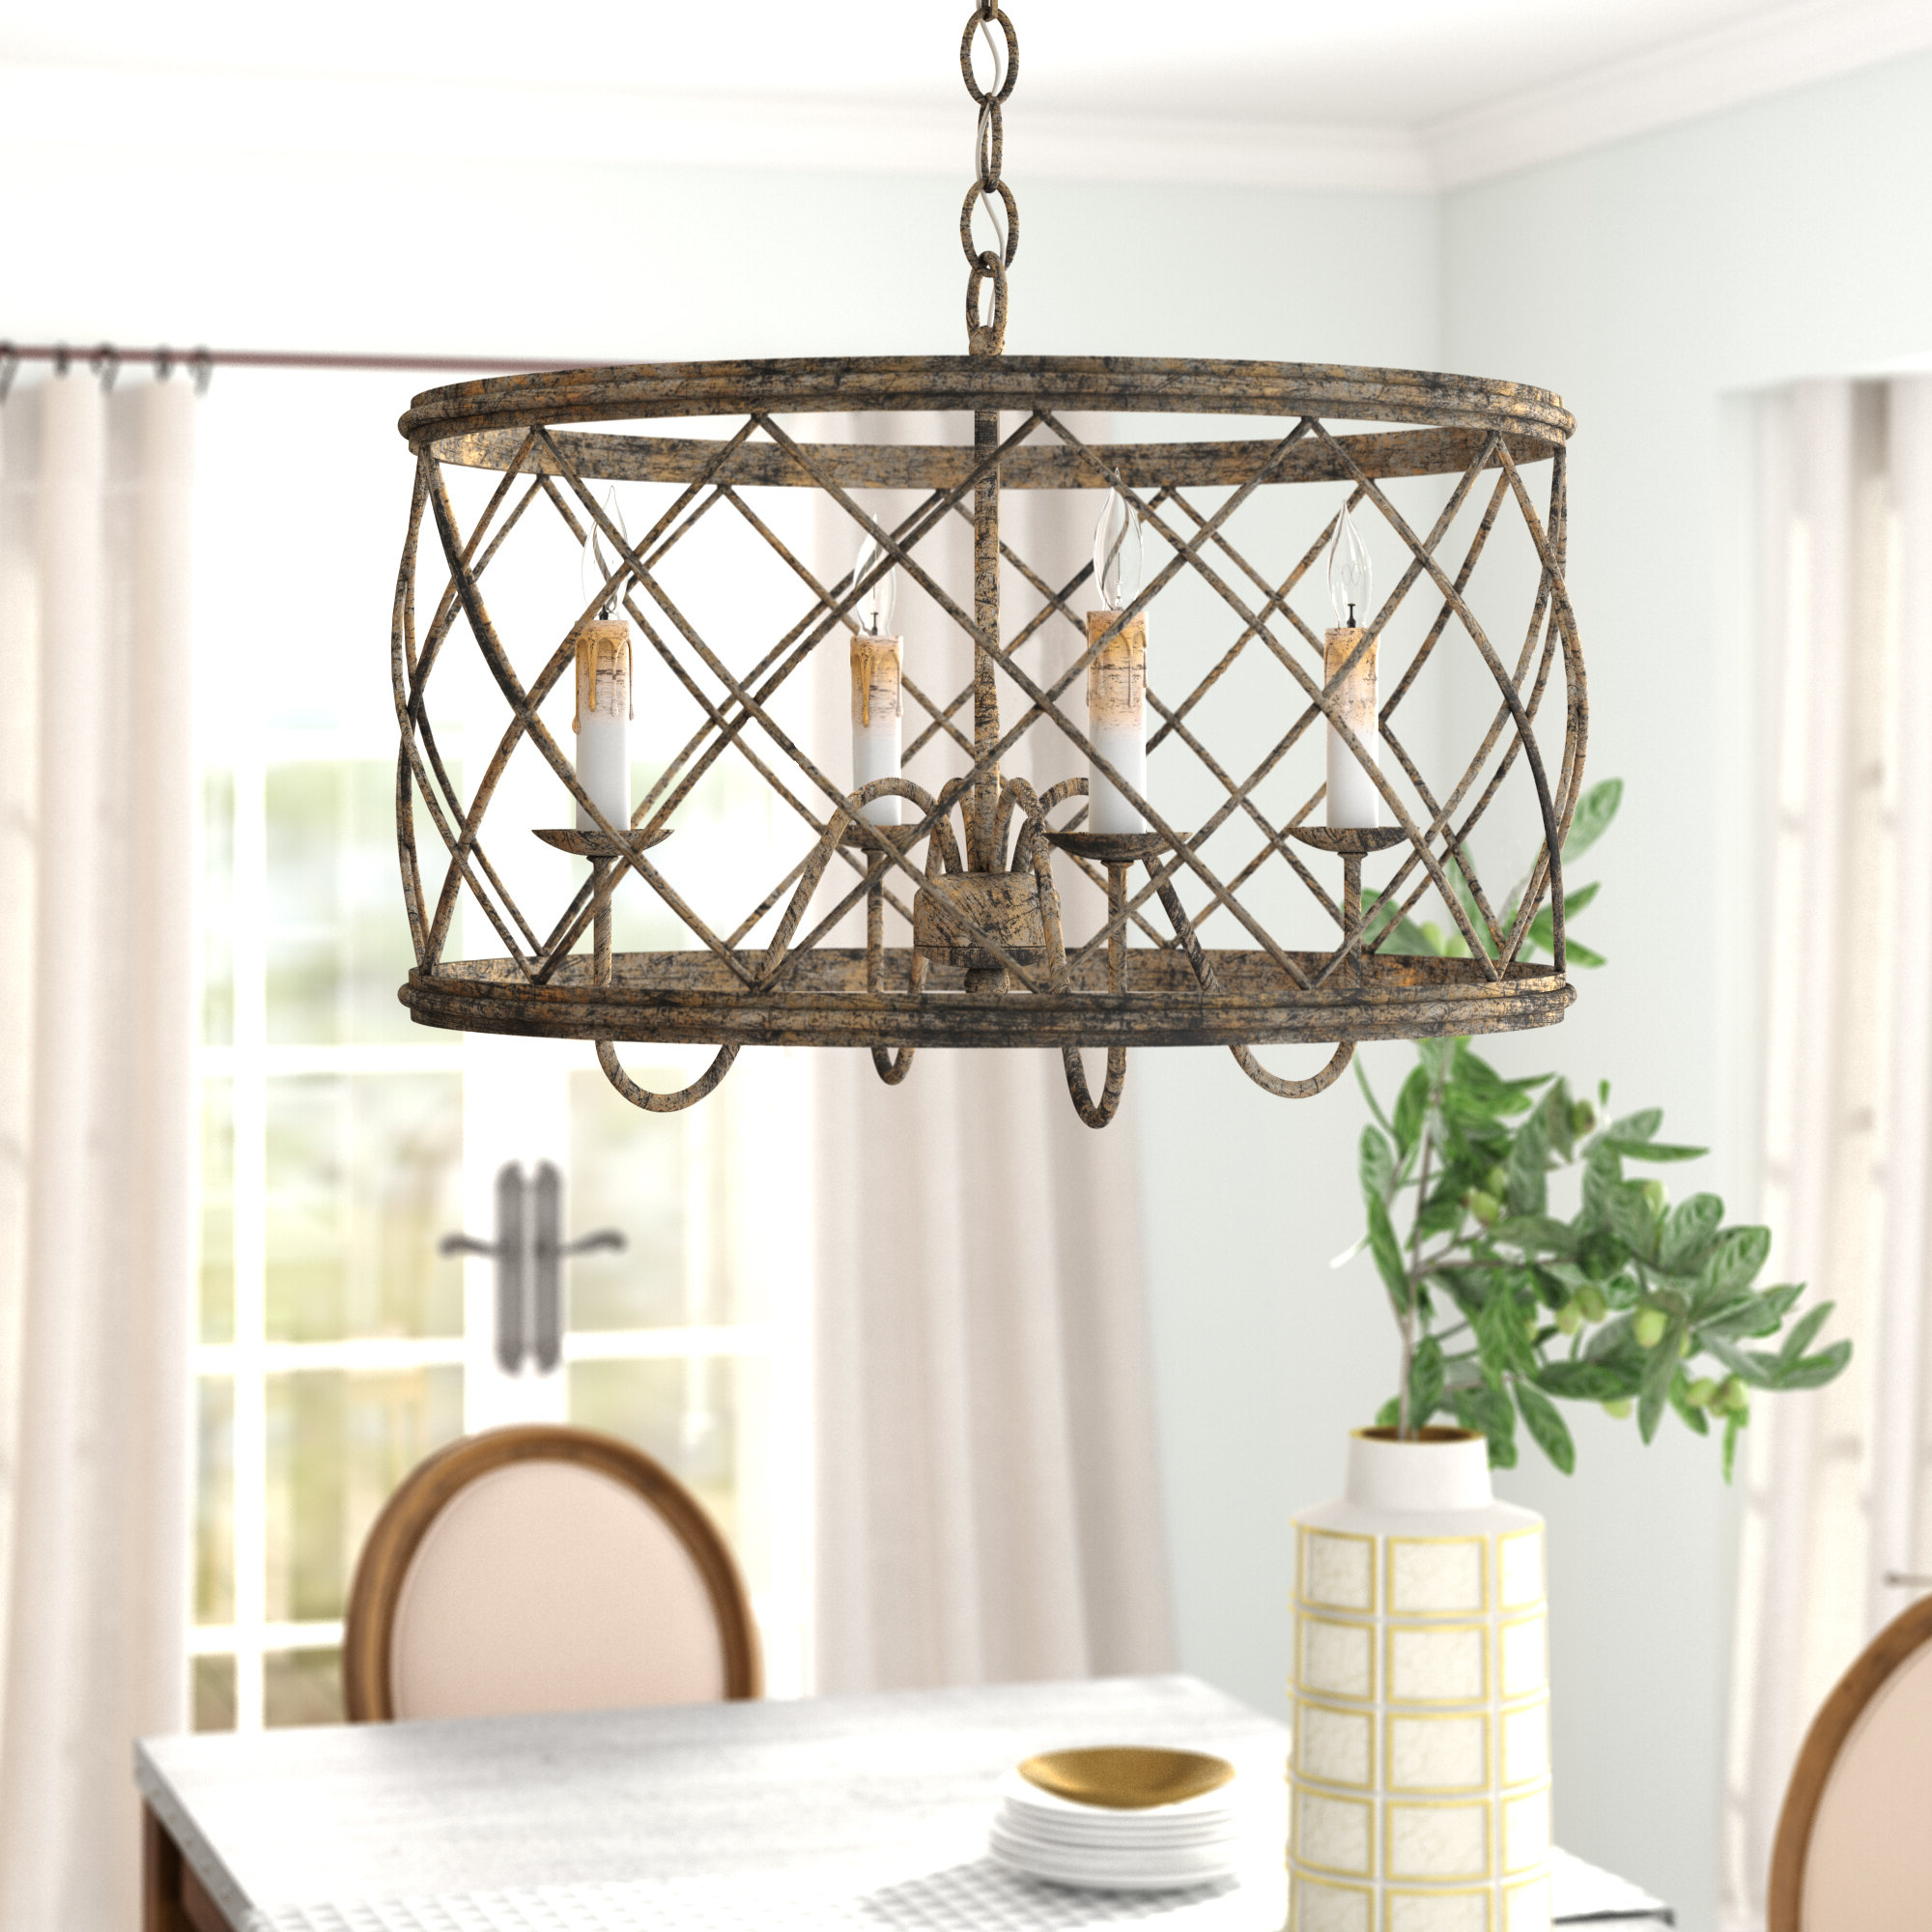 Ryne 4 Light Unique / Statement Chandelier With Fashionable Kierra 4 Light Unique / Statement Chandeliers (Gallery 6 of 20)